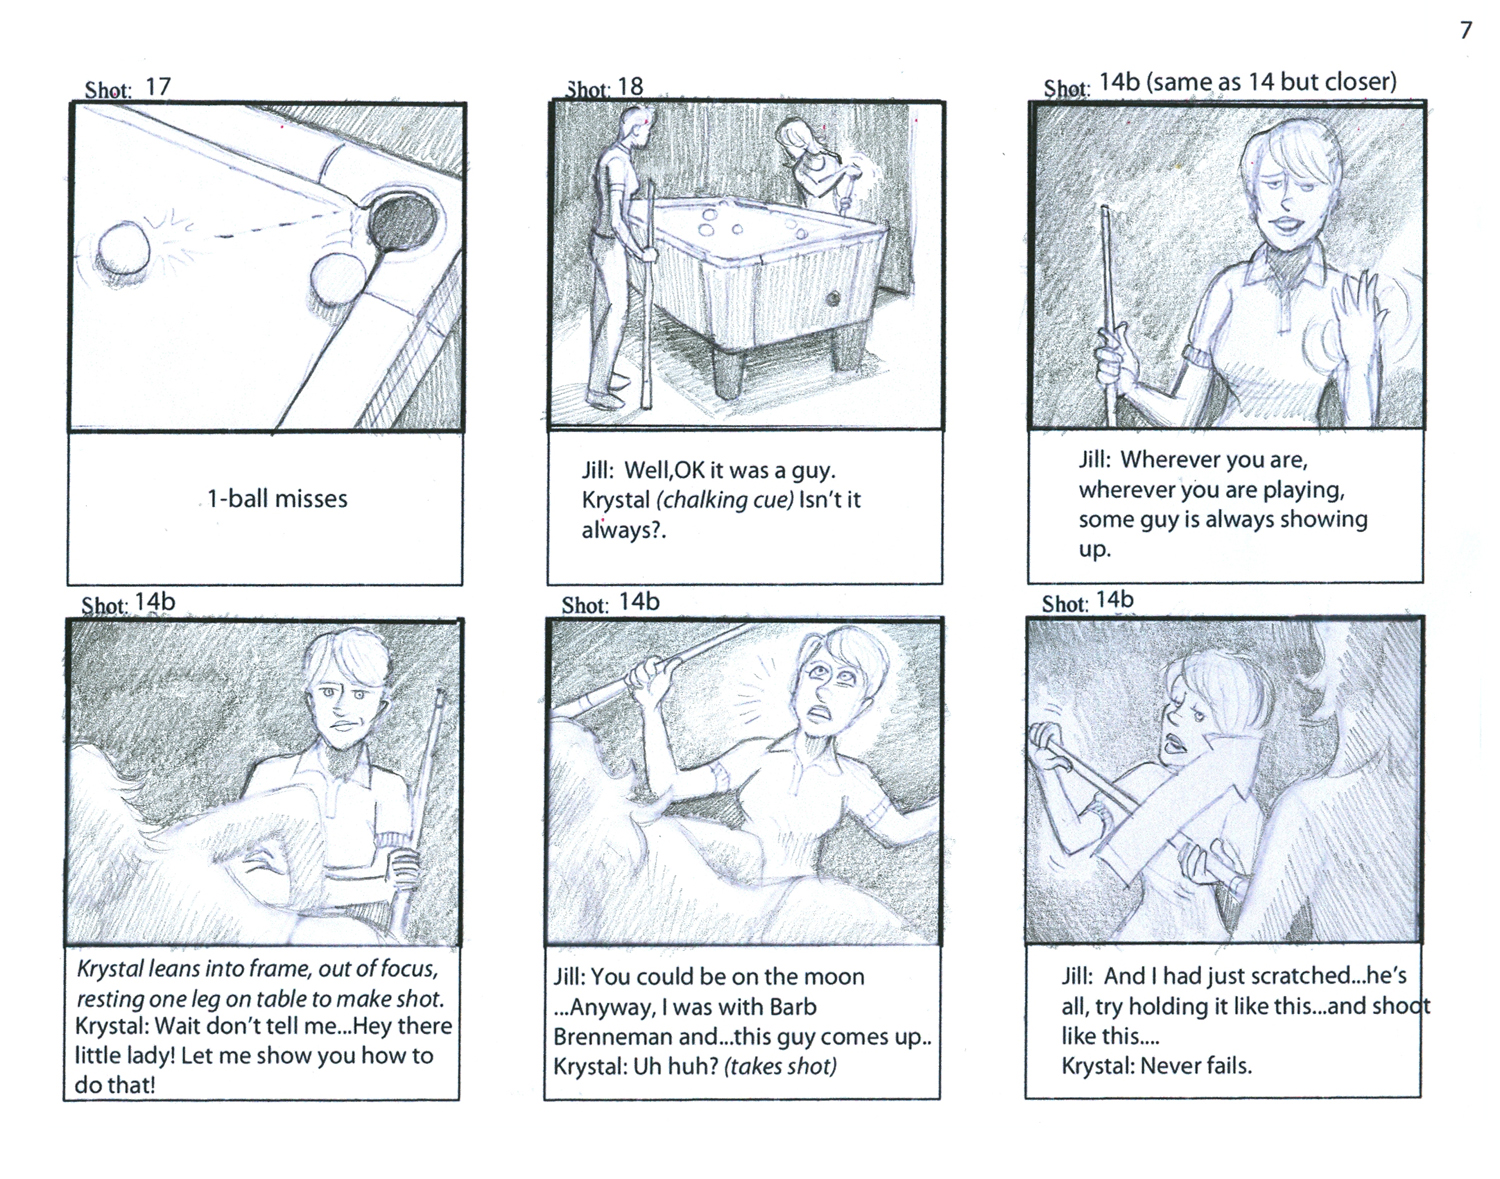 Example 2 - Storyboard